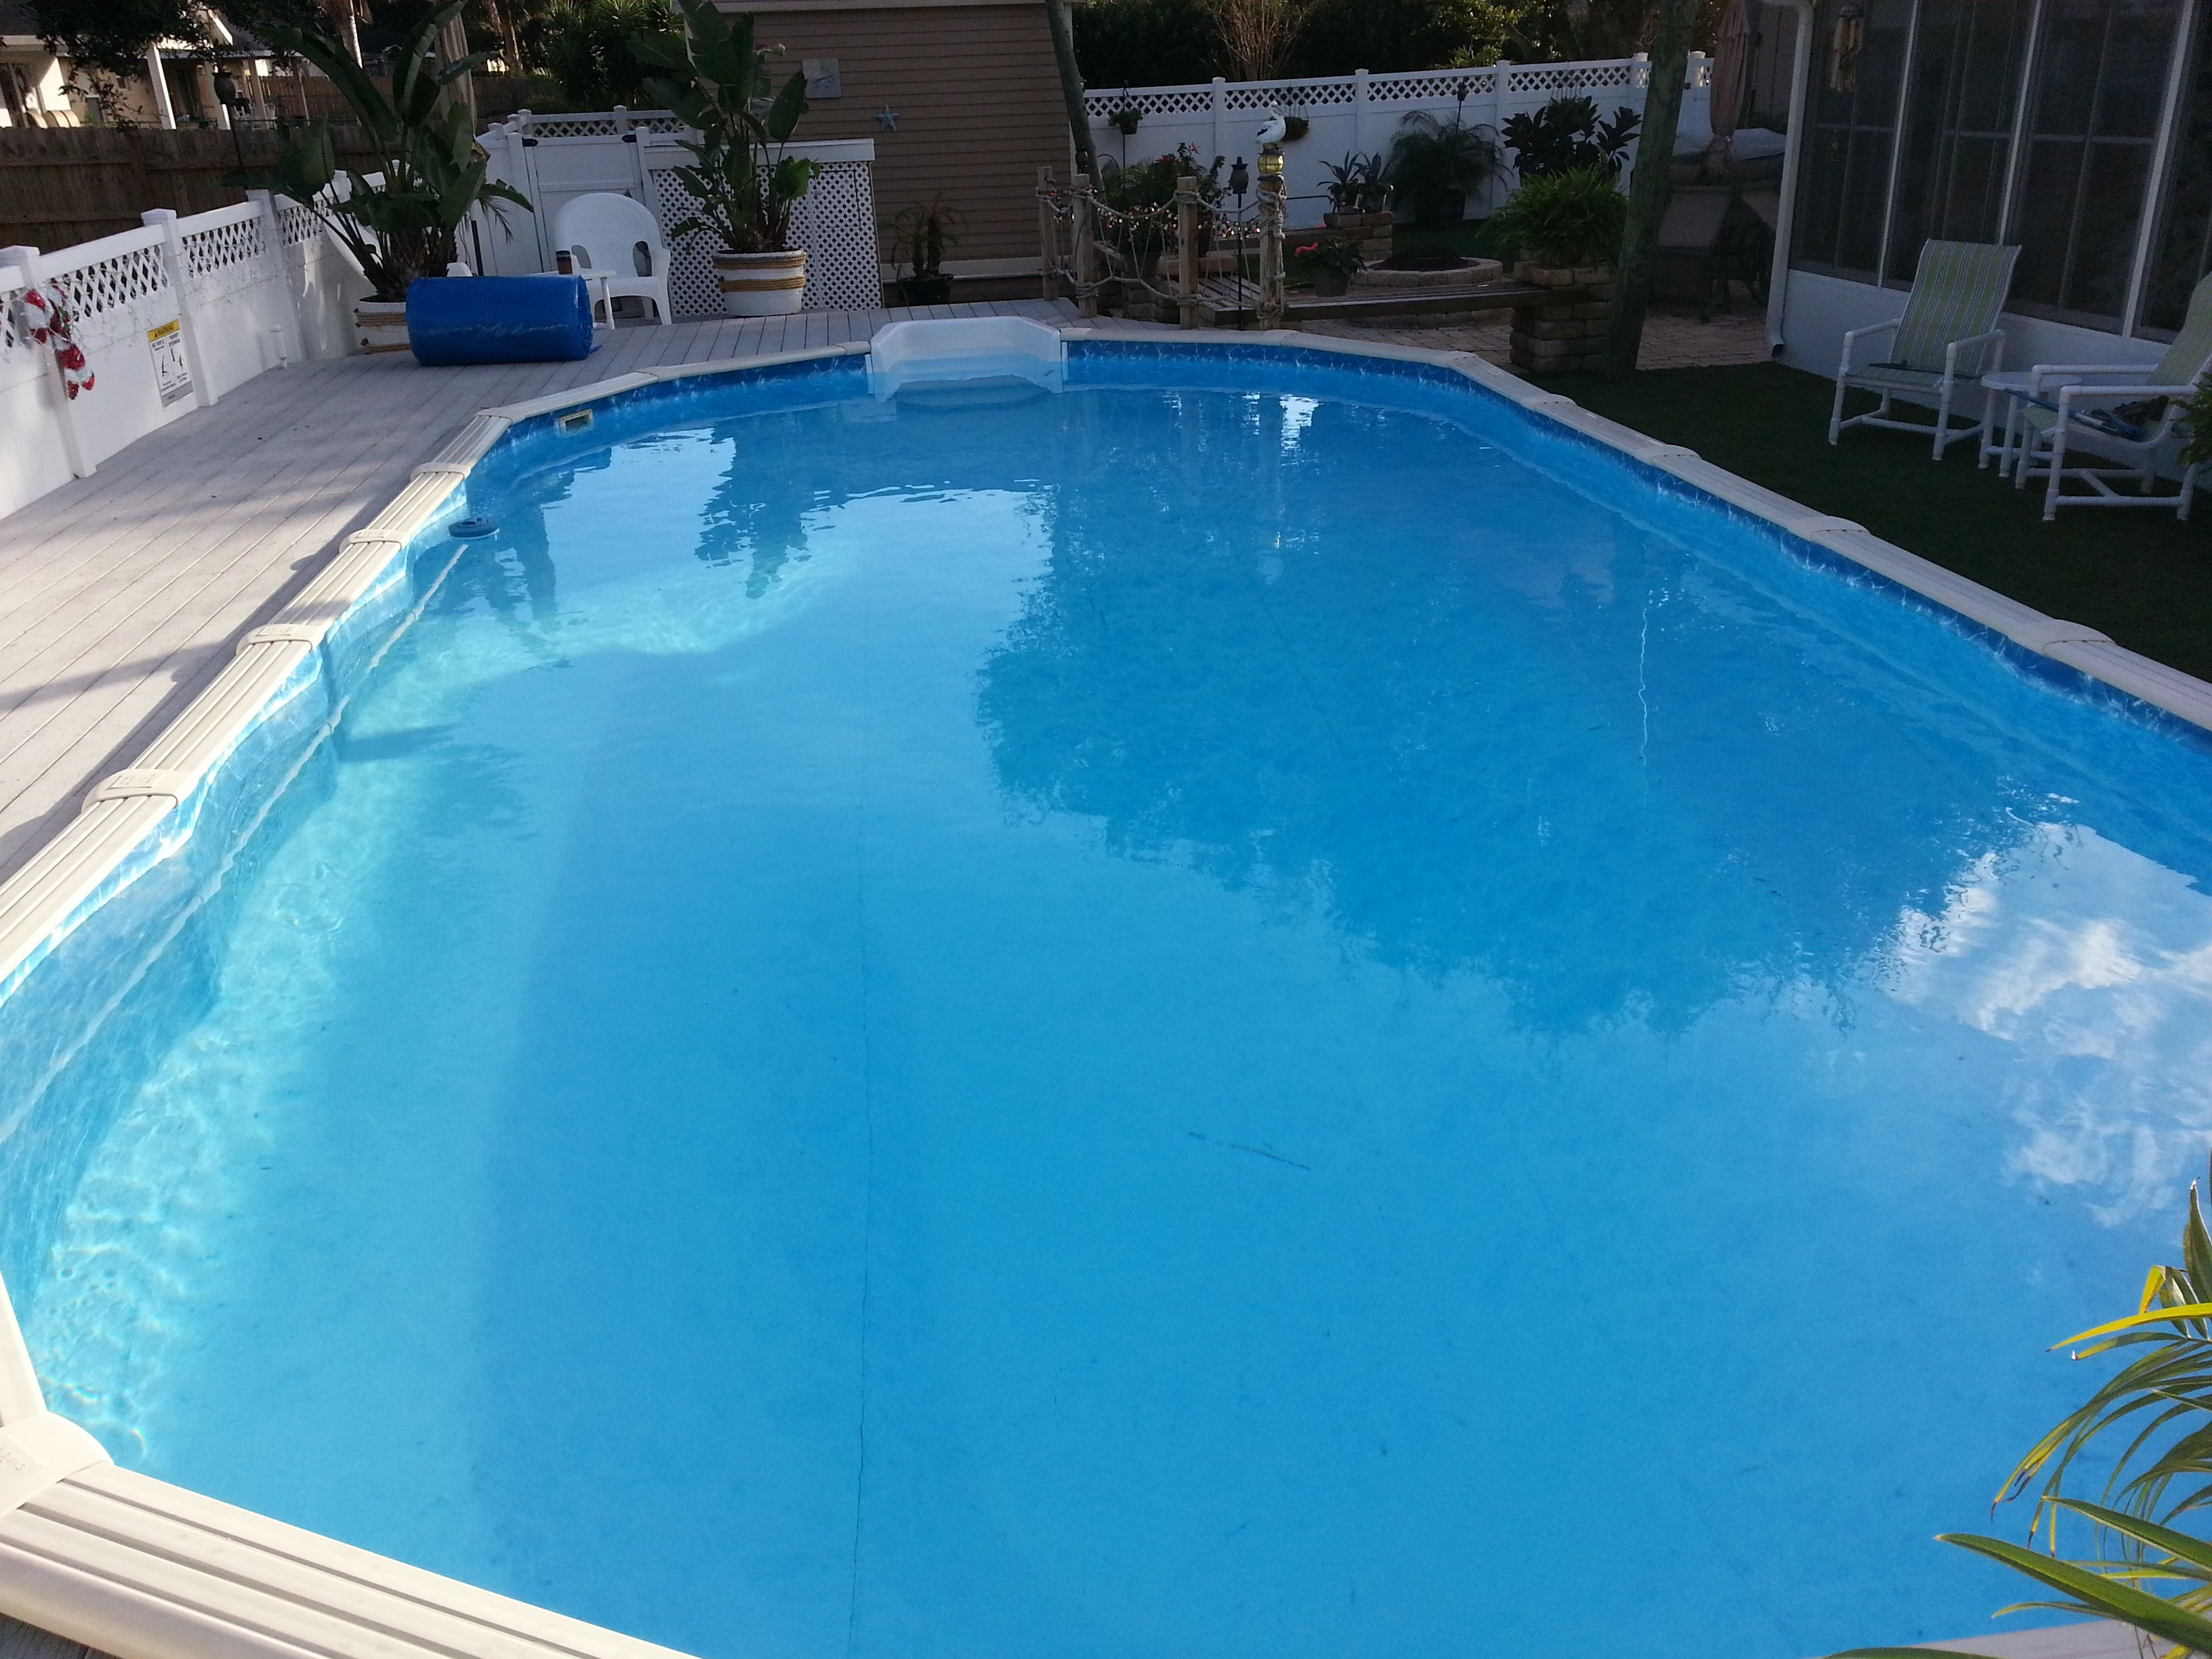 Very deep swimming pools pictures for Above ground swimming pools for sale near me